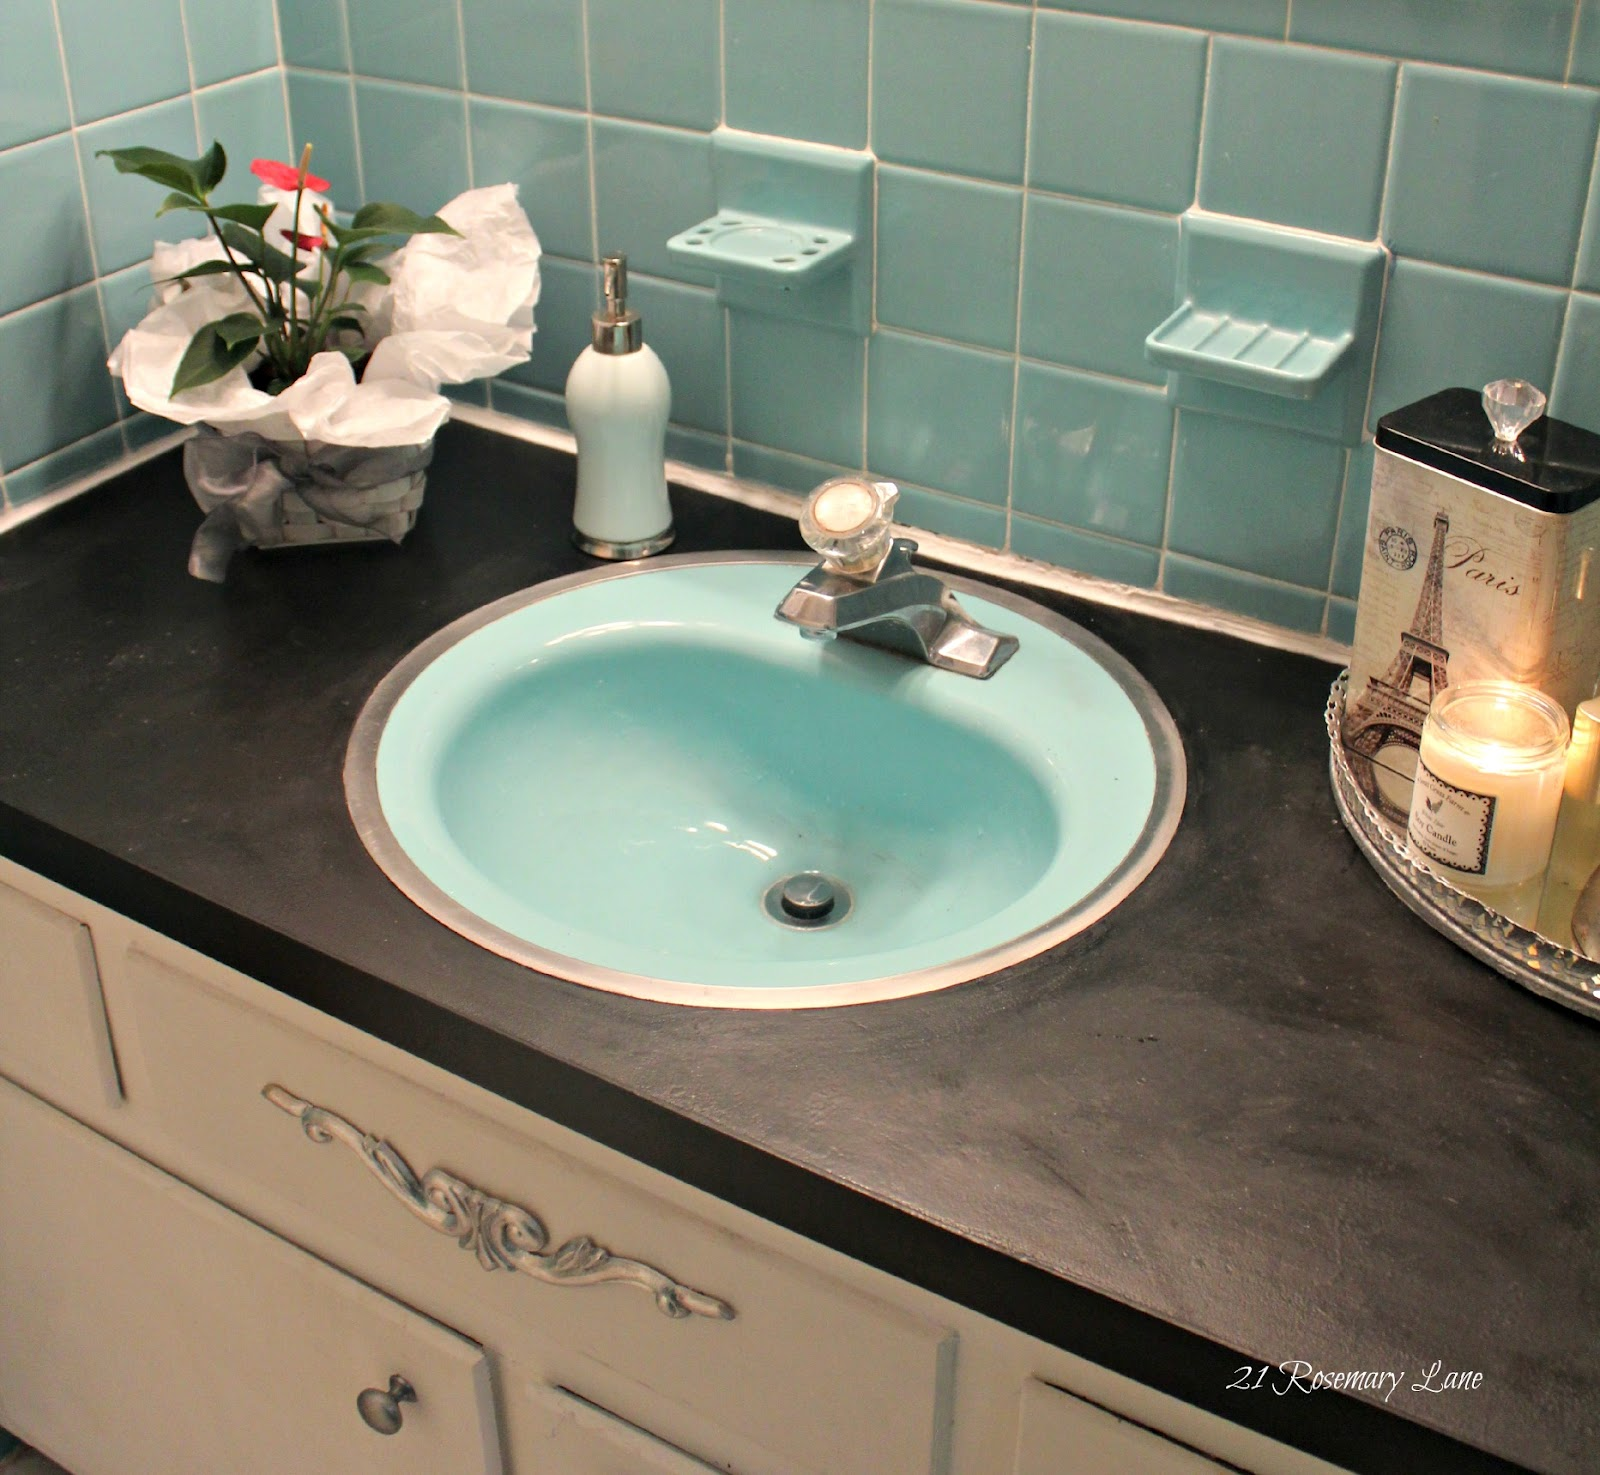 21 Rosemary Lane Painted Bathroom Counter Top